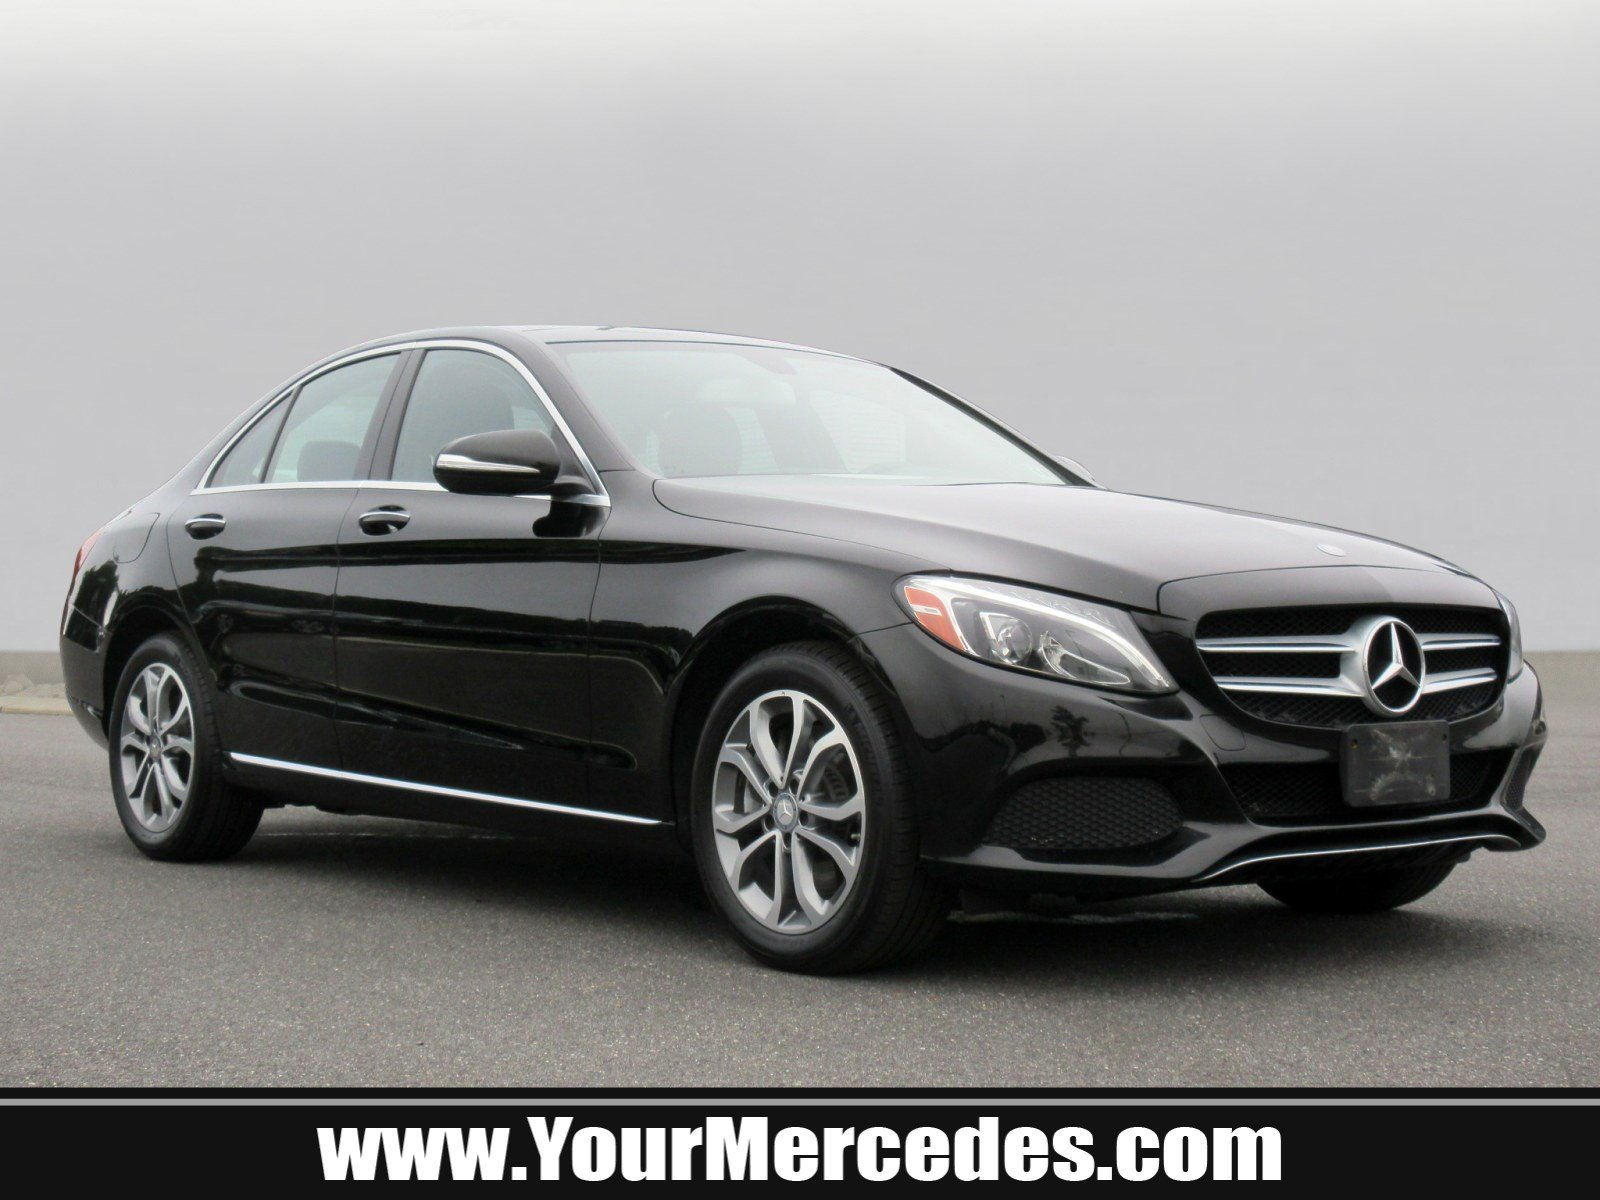 Pre Owned 2015 Mercedes Benz C Class C 300 SEDAN in Egg Harbor